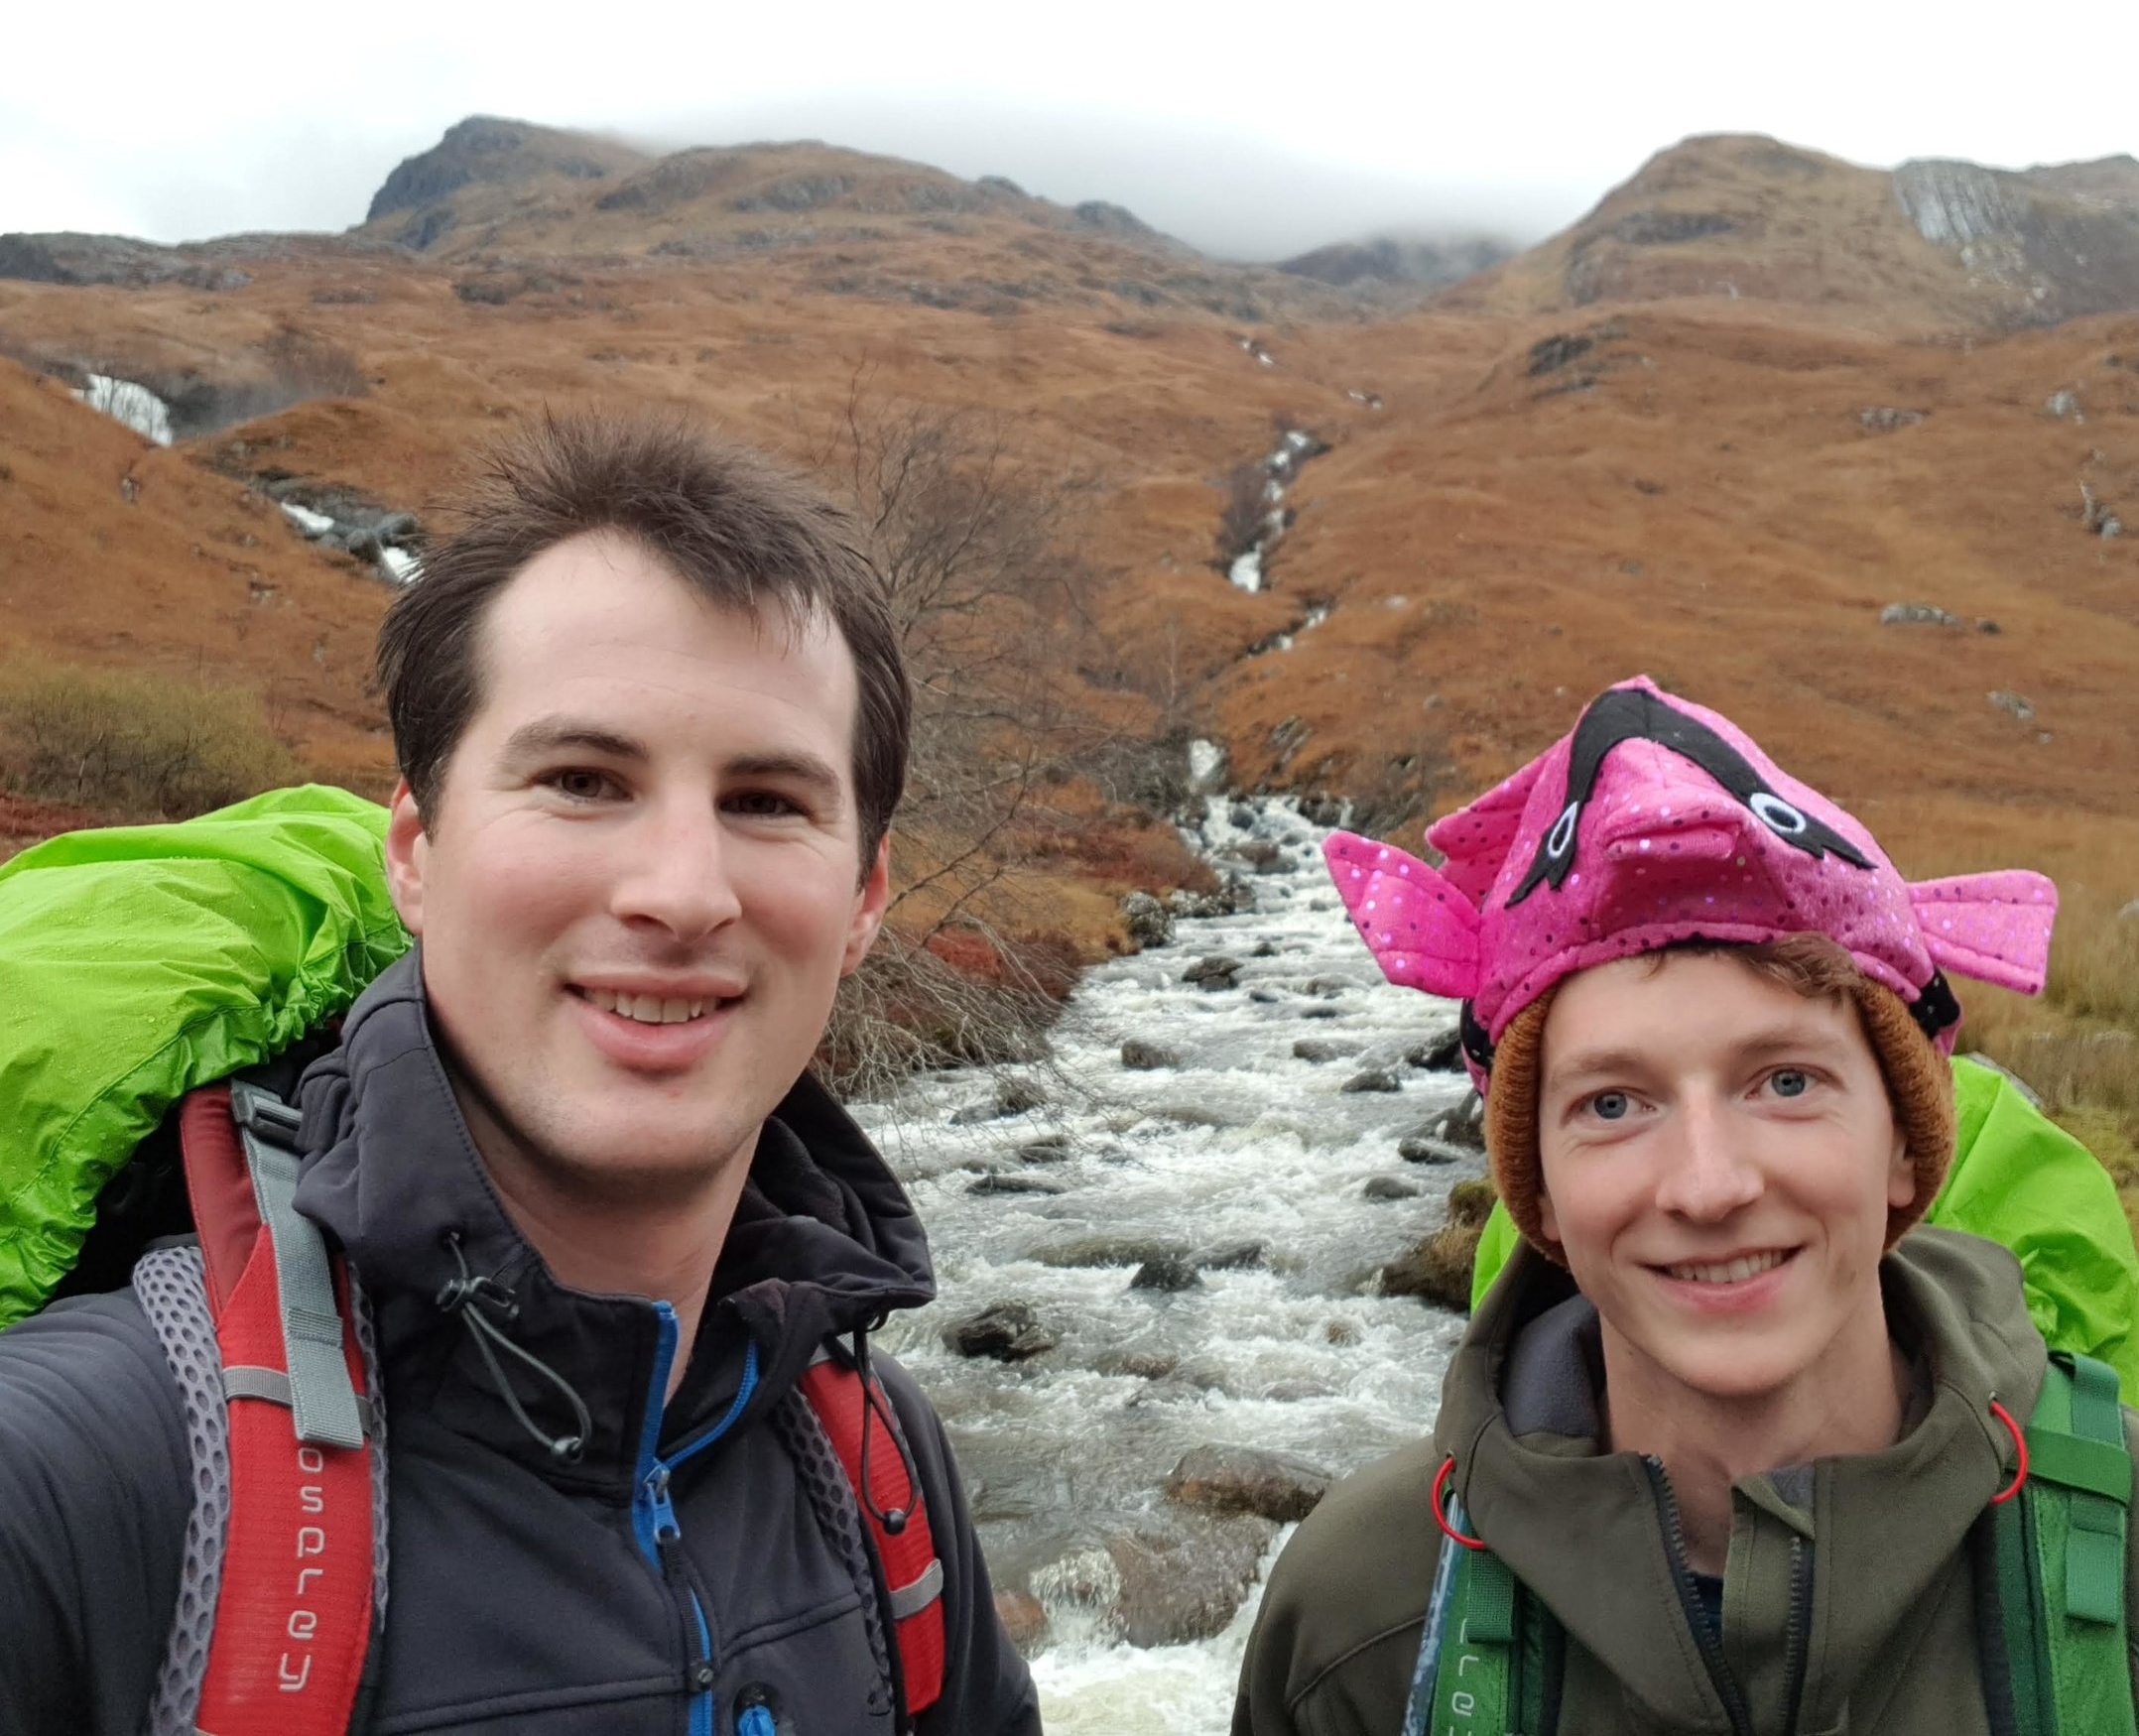 Charlie left & russell right starting their ascent of Aonach beag